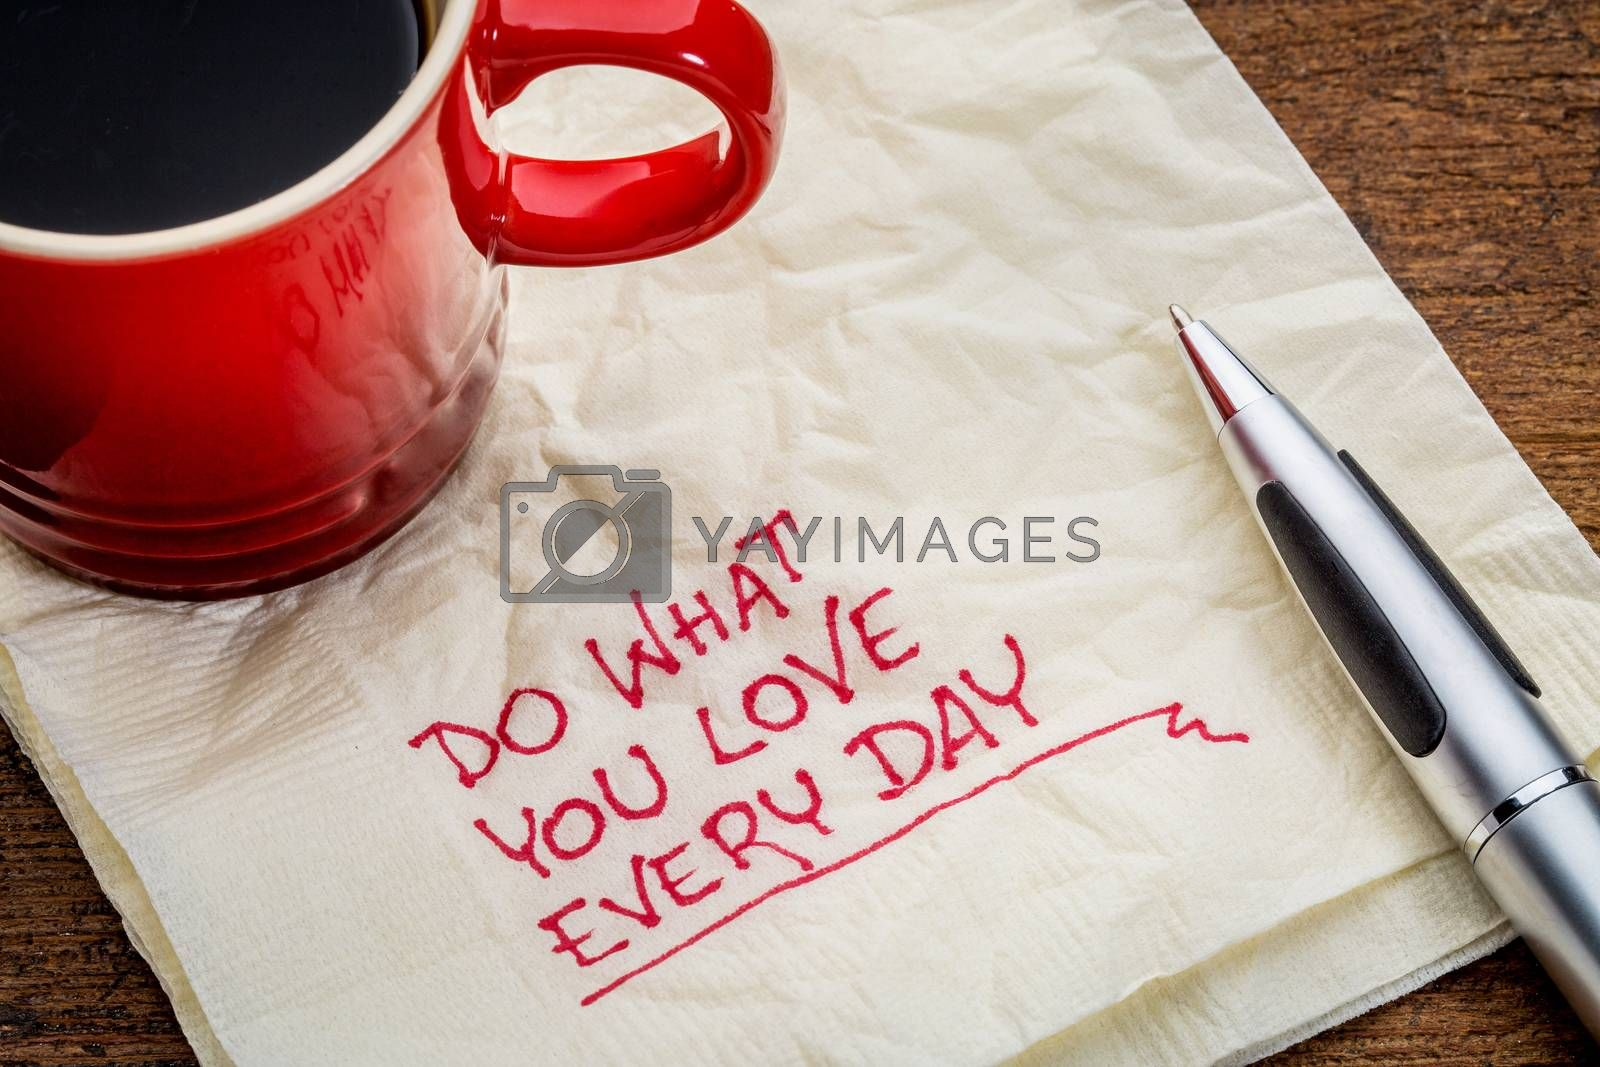 Do what you love every day - inspirational handwriting on a napkin with a cup of coffee